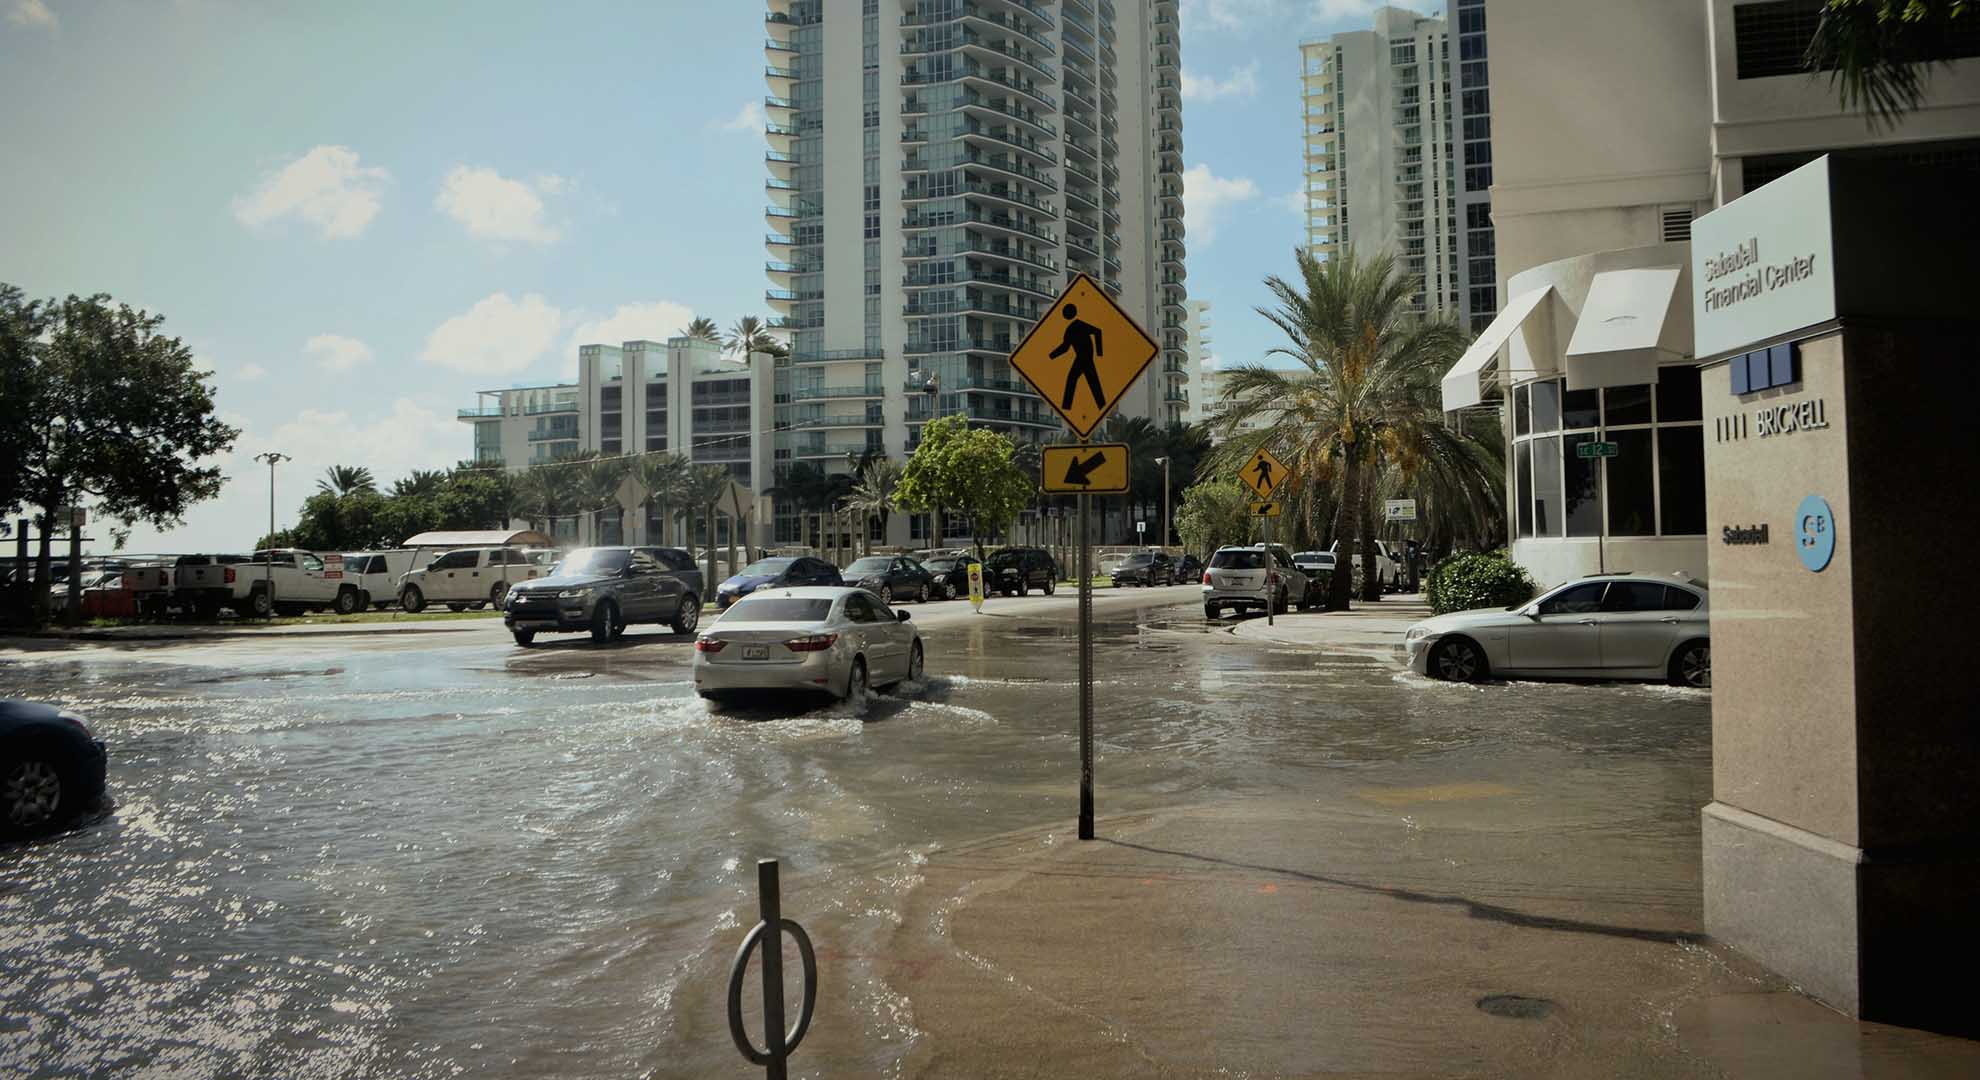 Even as sea water bubbles up through the streets, architects continue to build in Miami as we are asked for.